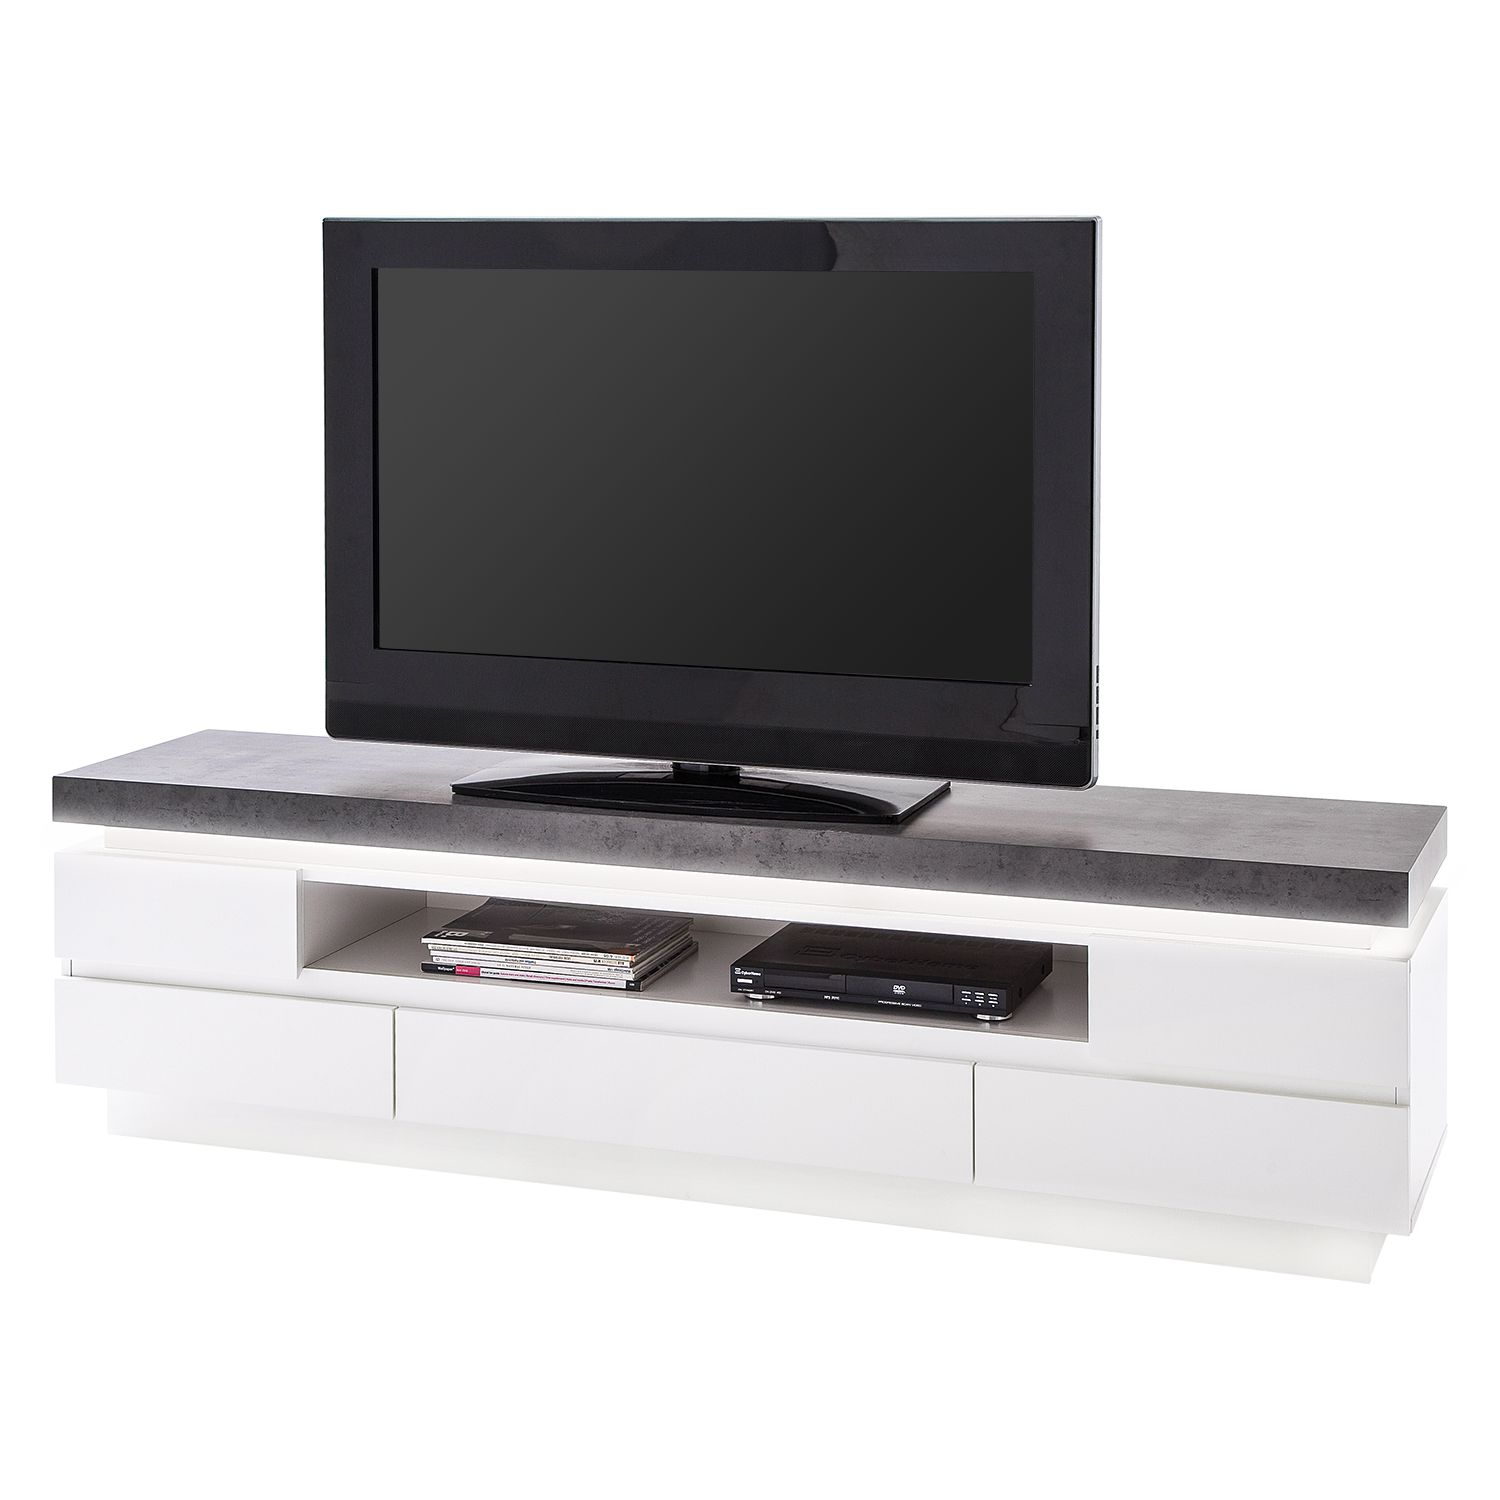 tv meubel met verlichting kopen online internetwinkel. Black Bedroom Furniture Sets. Home Design Ideas